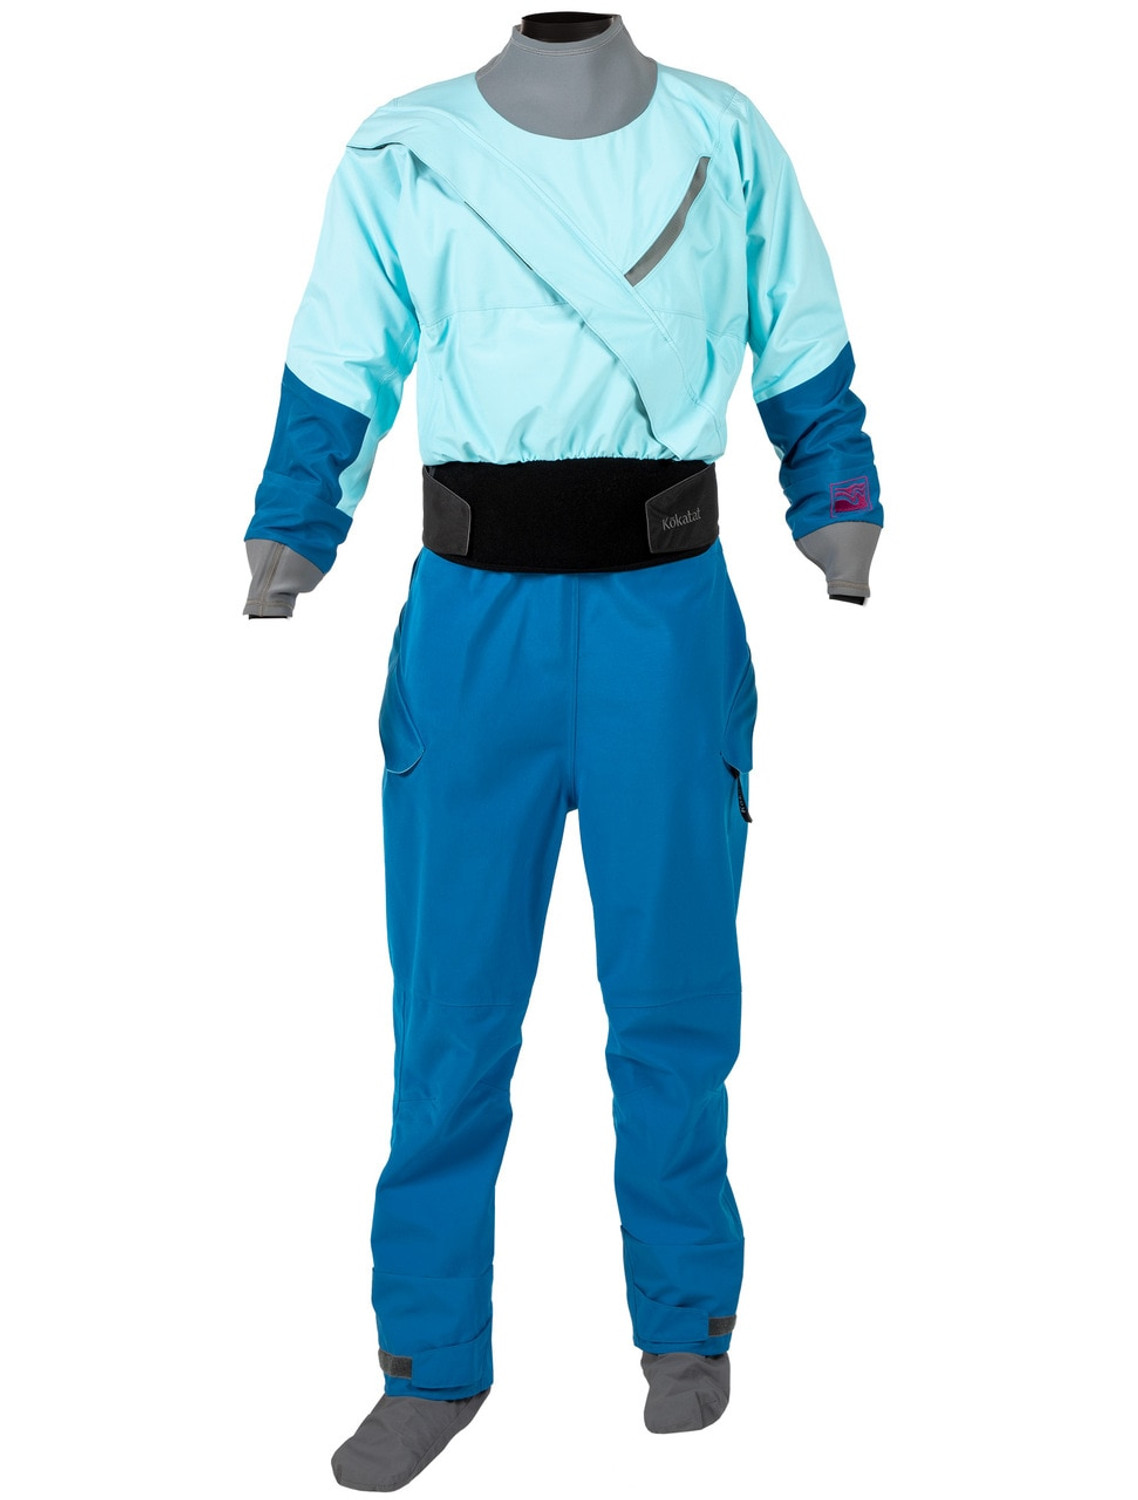 Women's Meridian Gore-Tex PRO Dry Suit w/Dropseat - Ice - Front   Western Canoeing & Kayaking